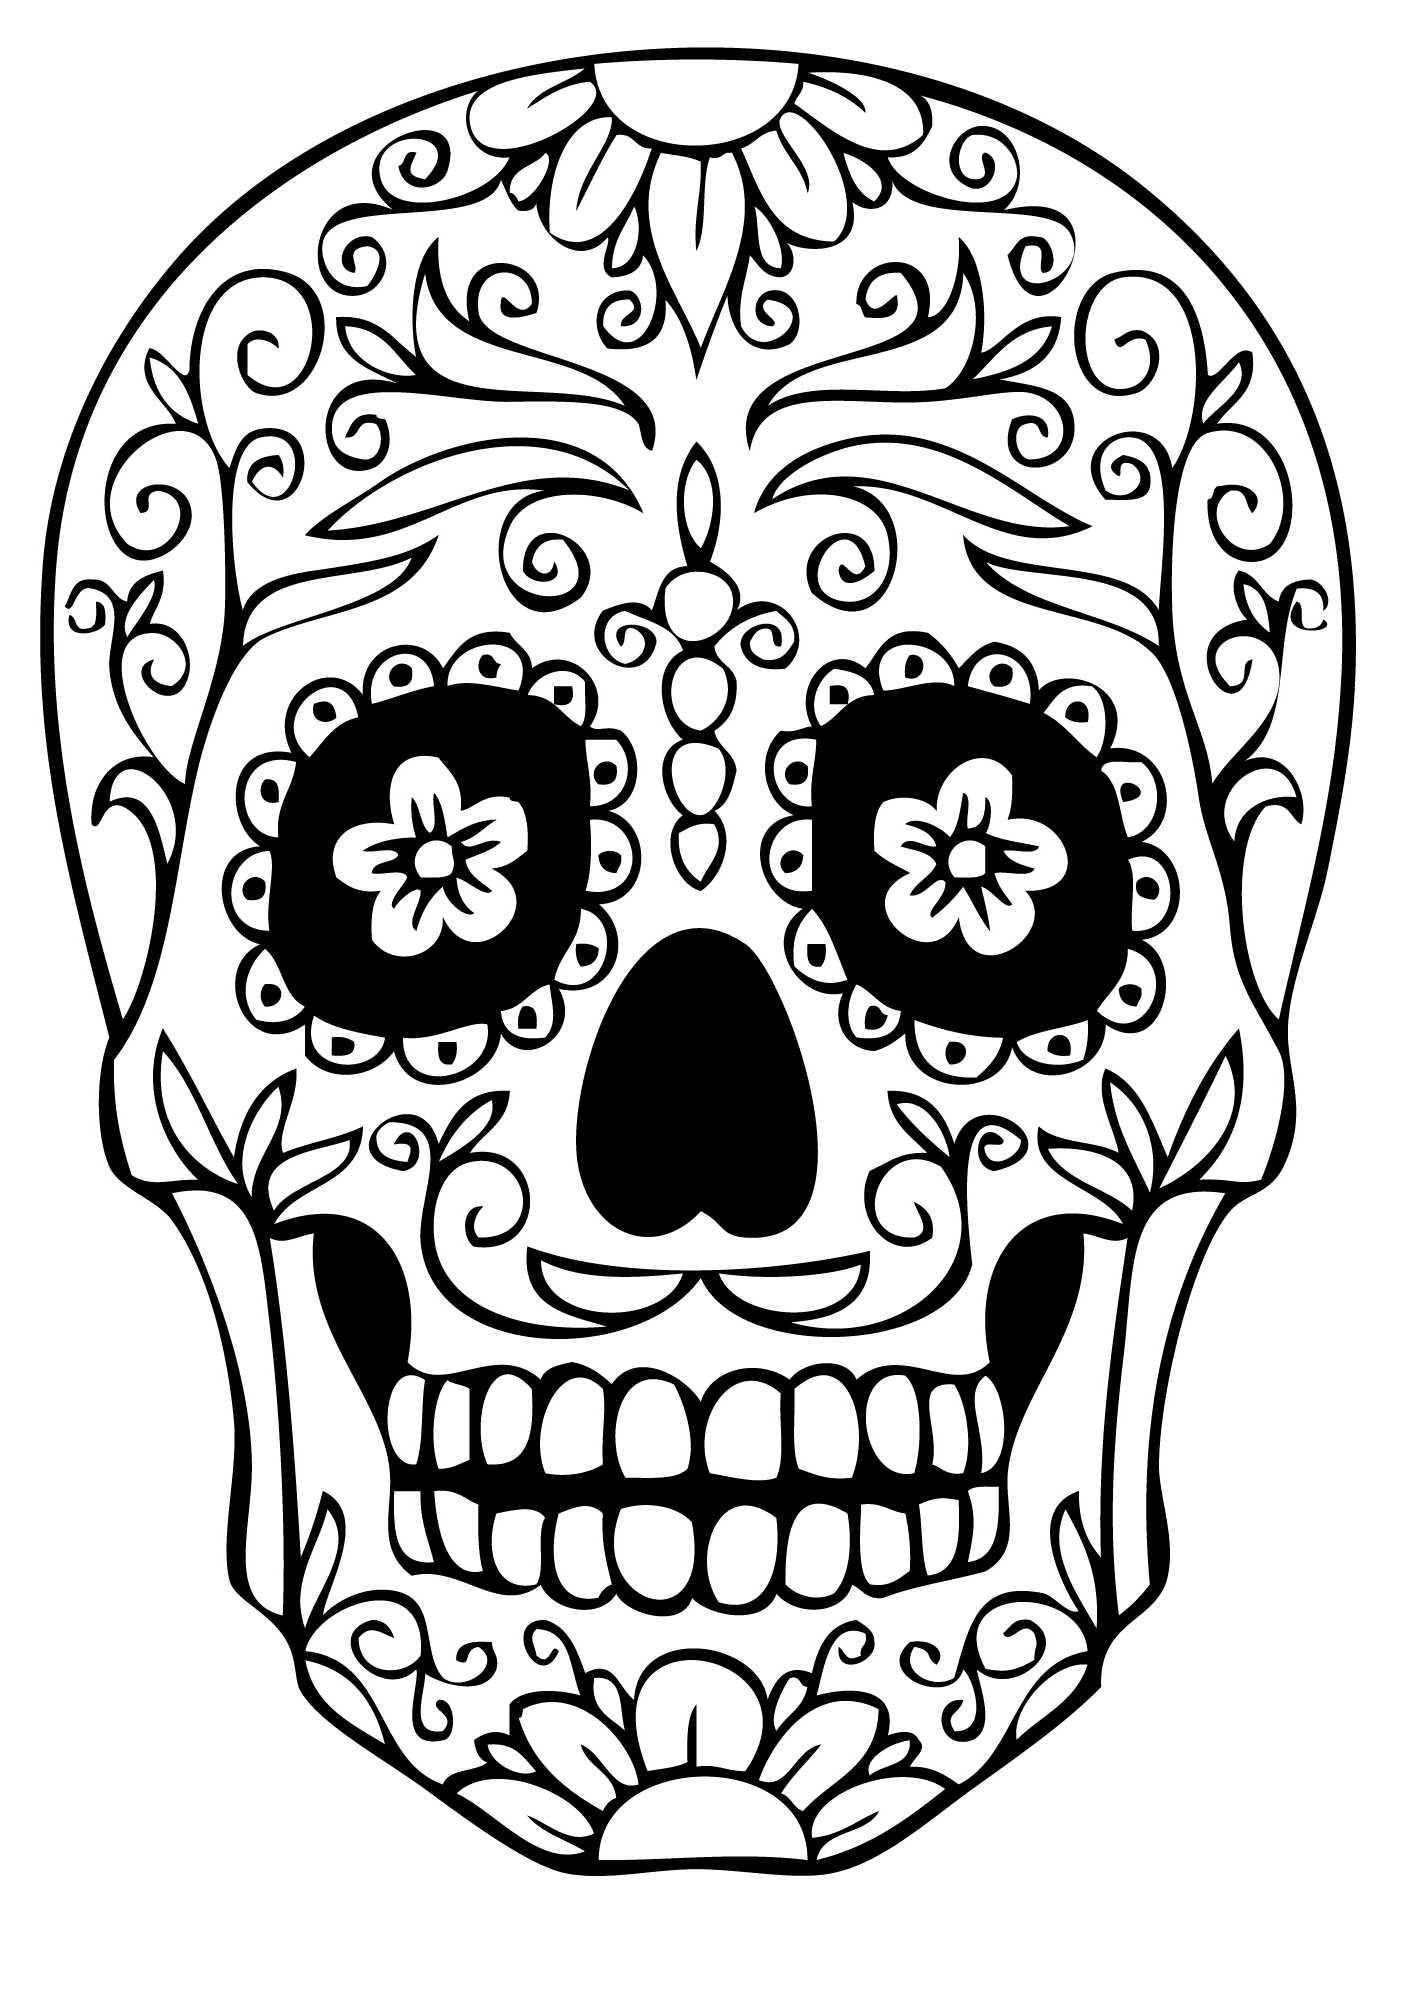 coloring printable day of the dead day of the dead sugar skull coloring page free printable of coloring day the printable dead